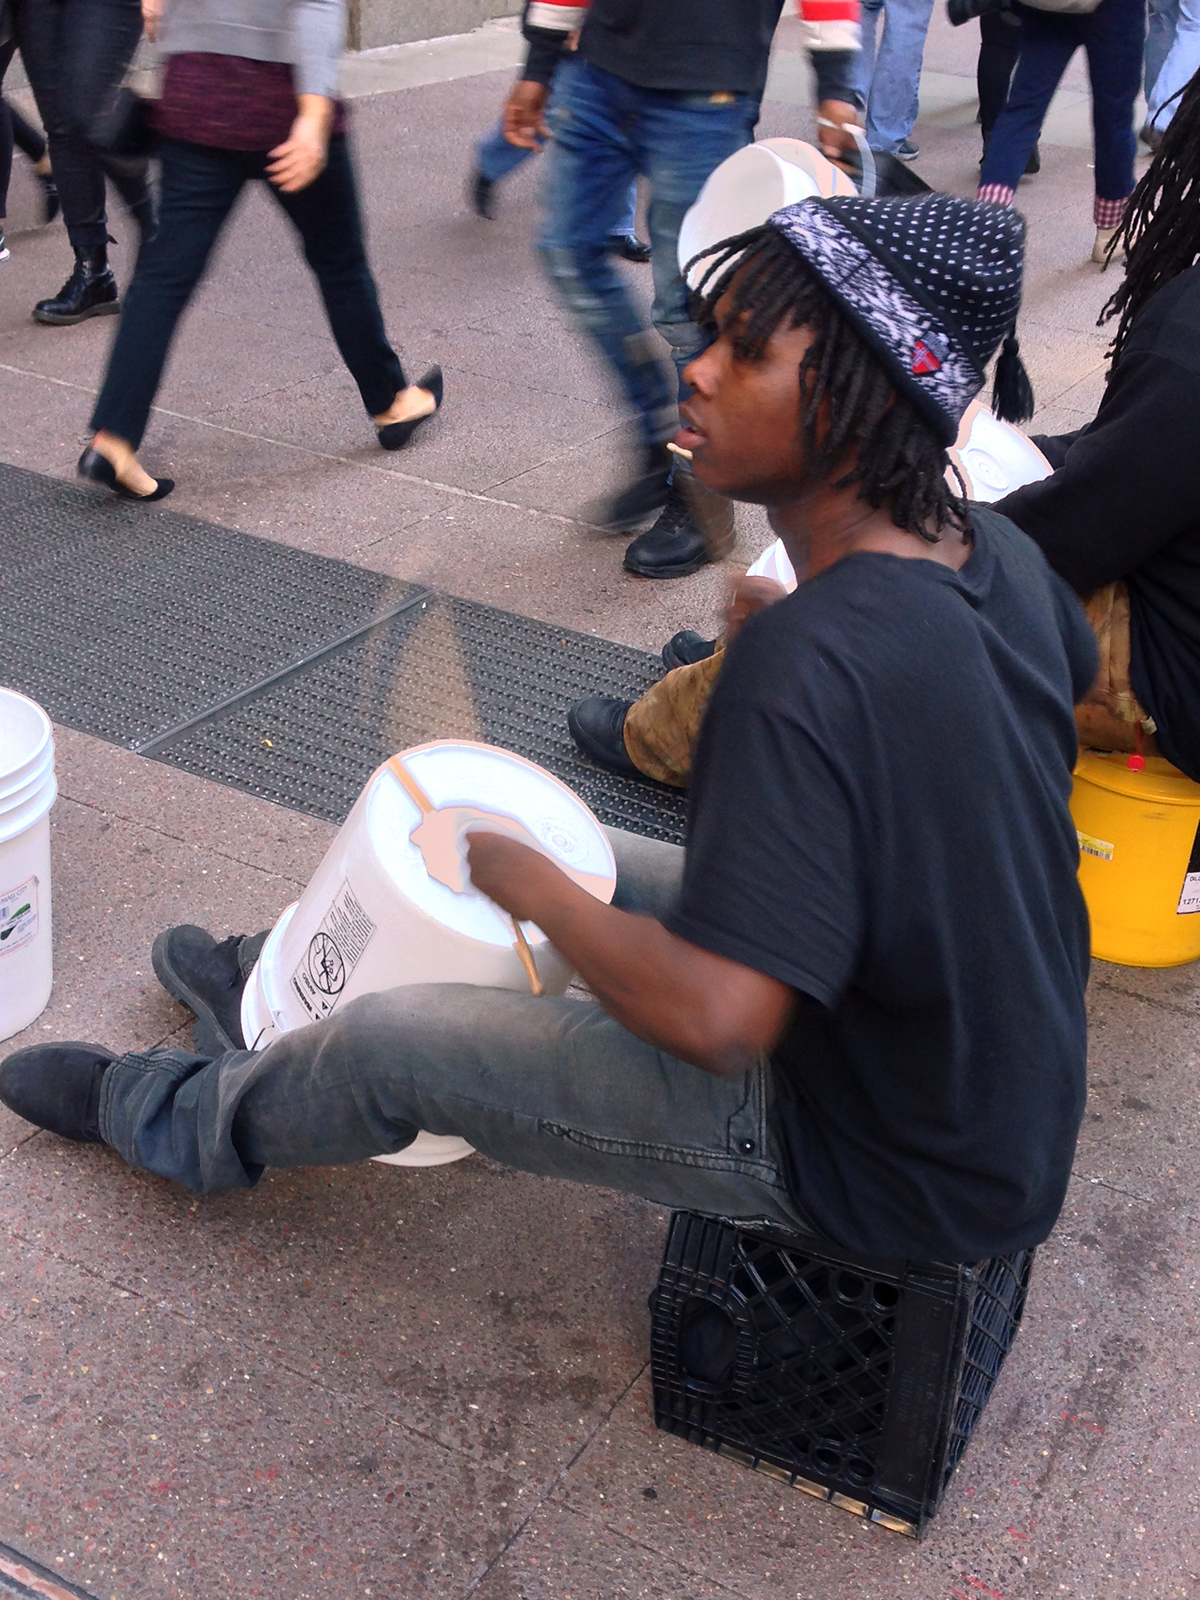 A so-called bucket boy performs downtown, where a debate is taking place over whether street performers are a nuisance or add to the city's charm. (Claire Donnelly/WBEZ)